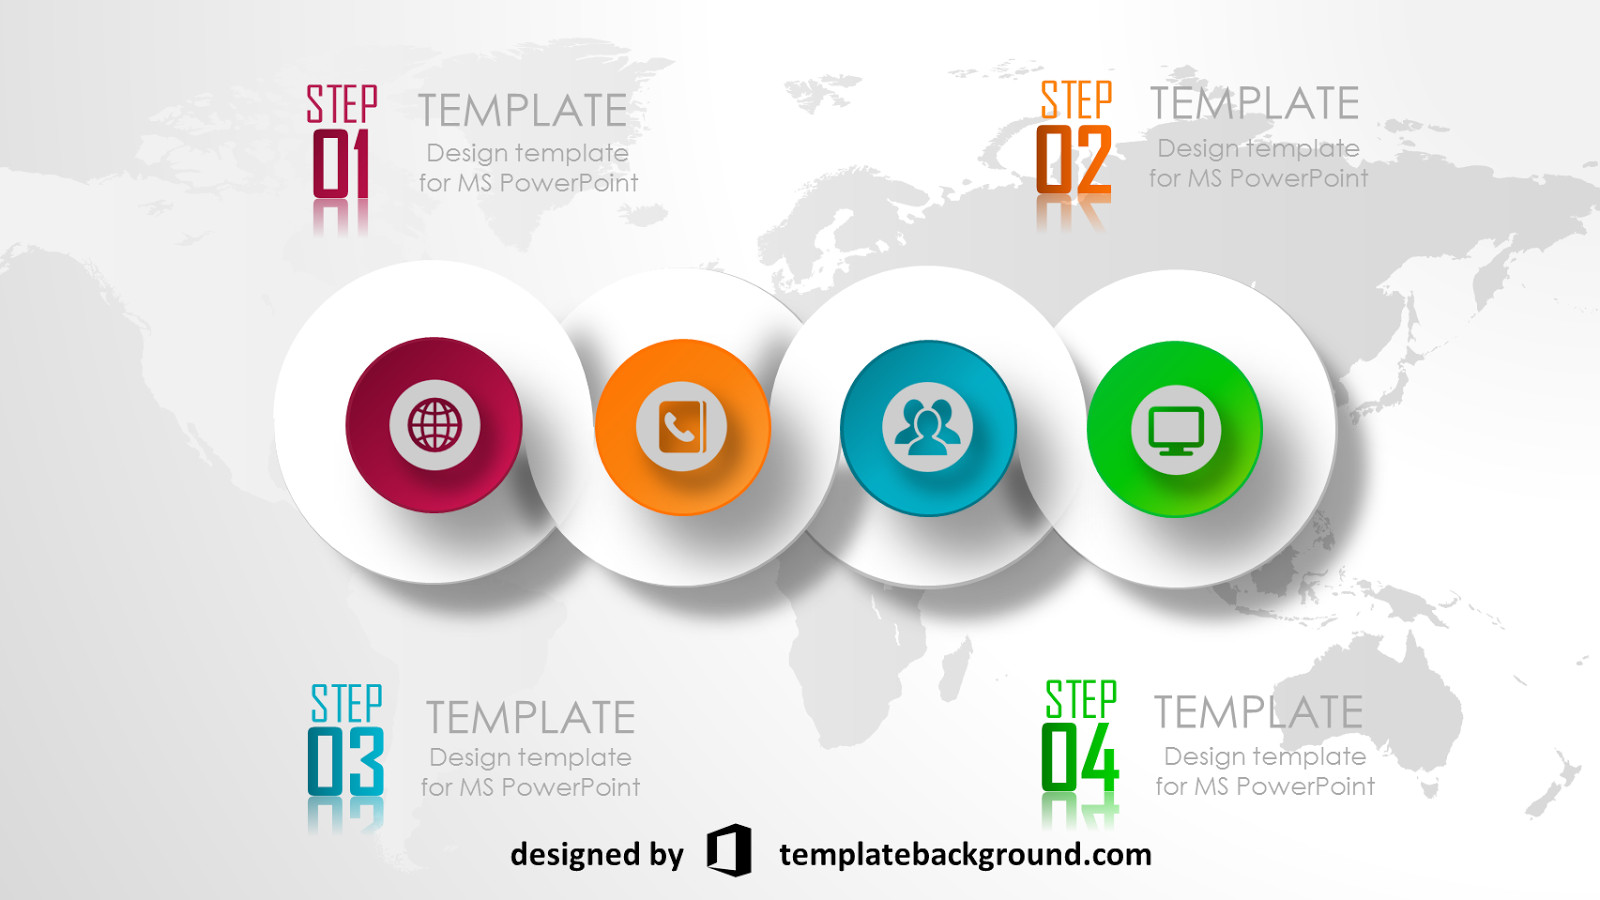 Free Animated Powerpoint Templates Animated Powerpoint Templates Free